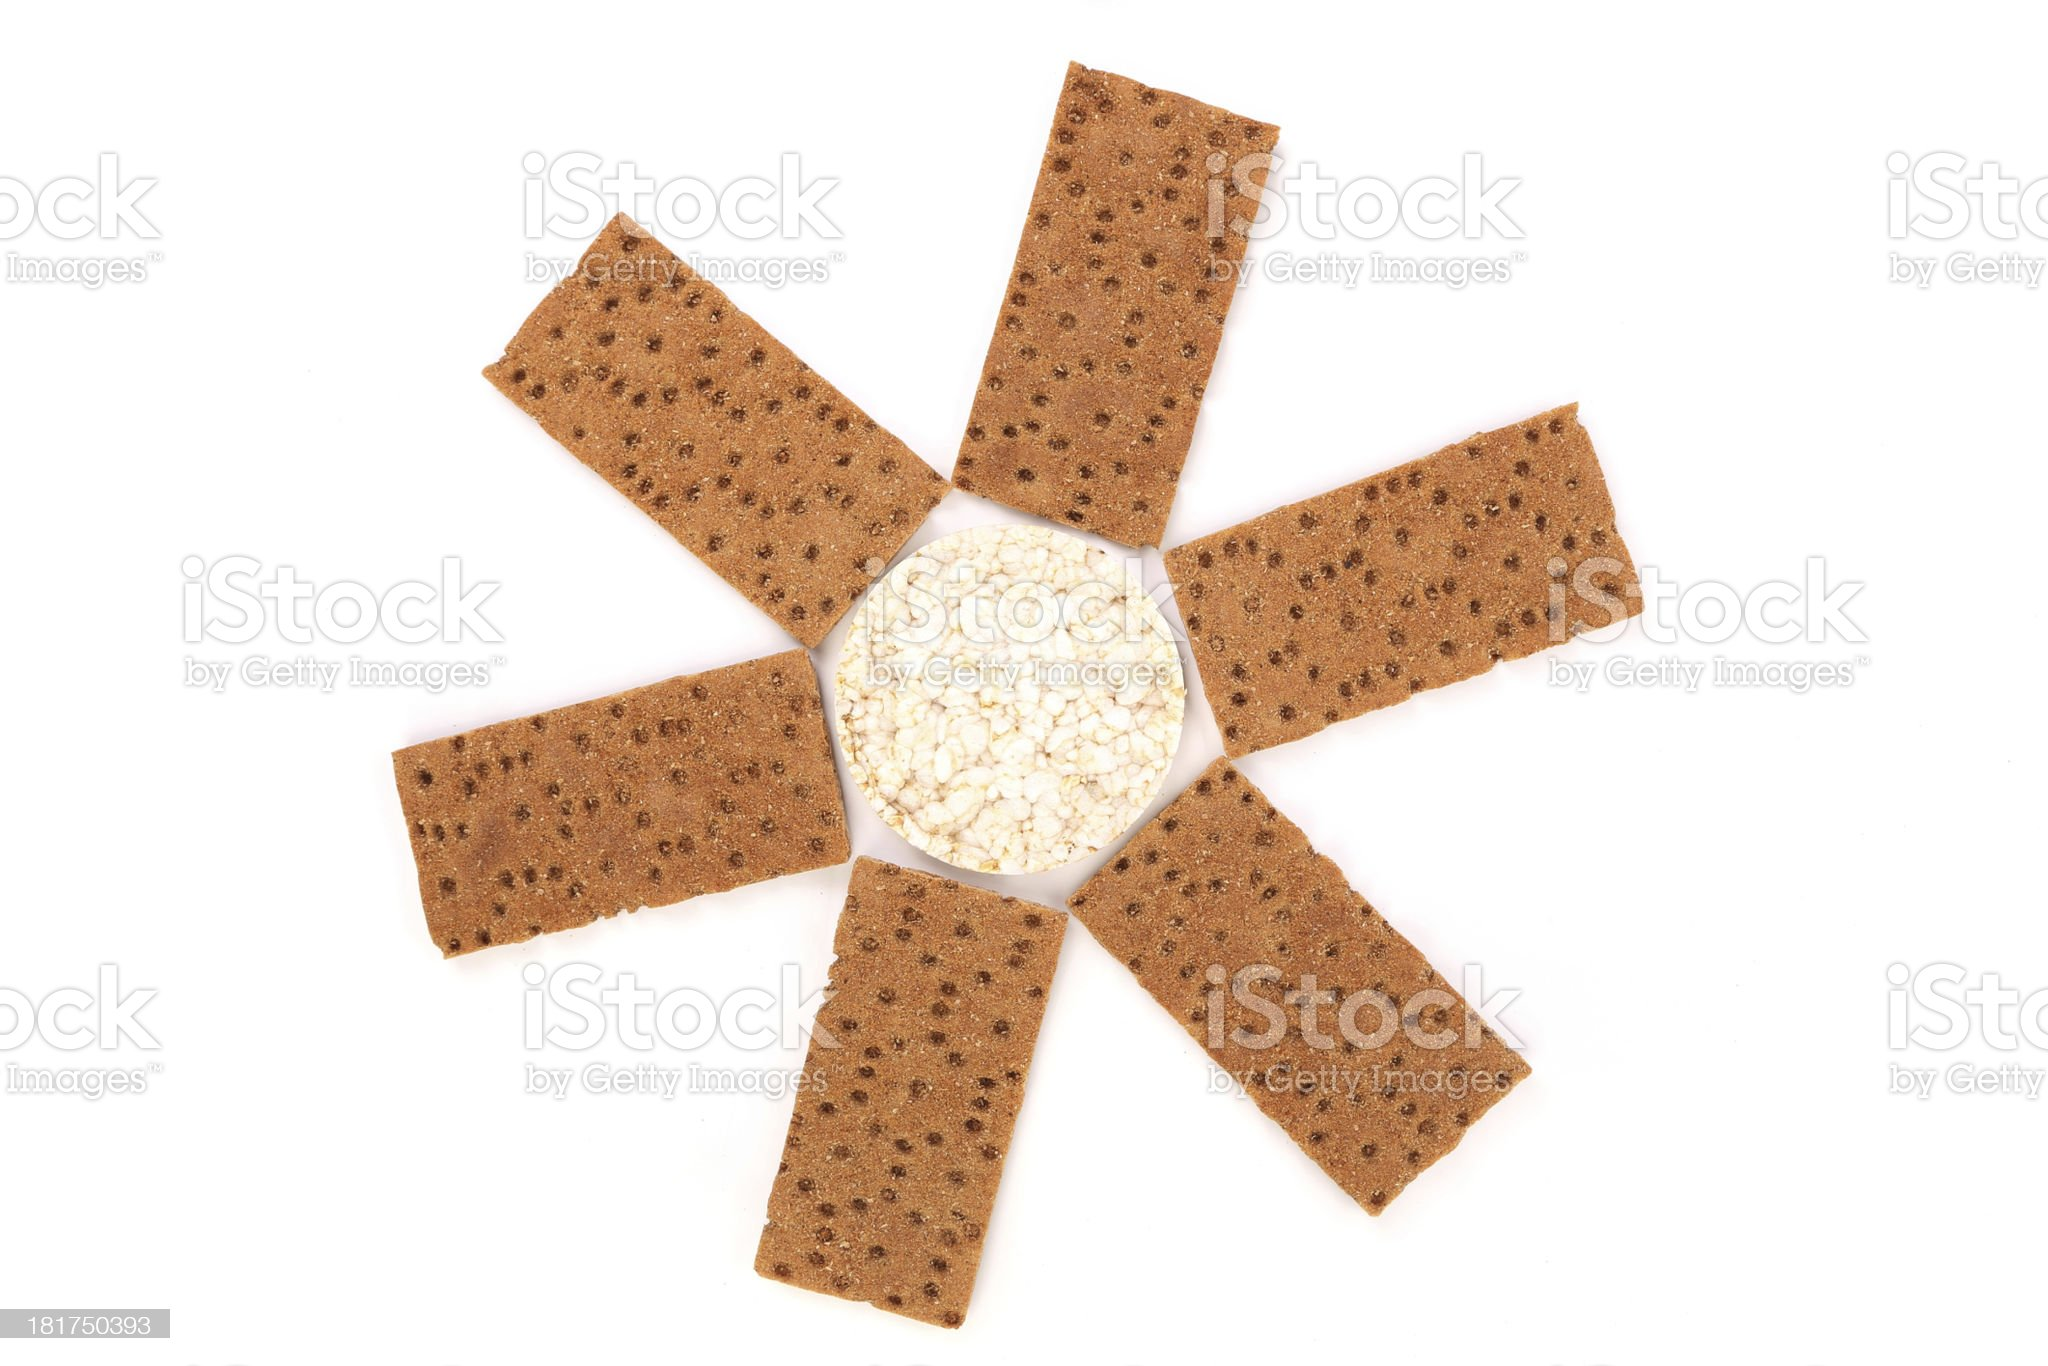 Puffed rice snack and grain crisp bread. royalty-free stock photo